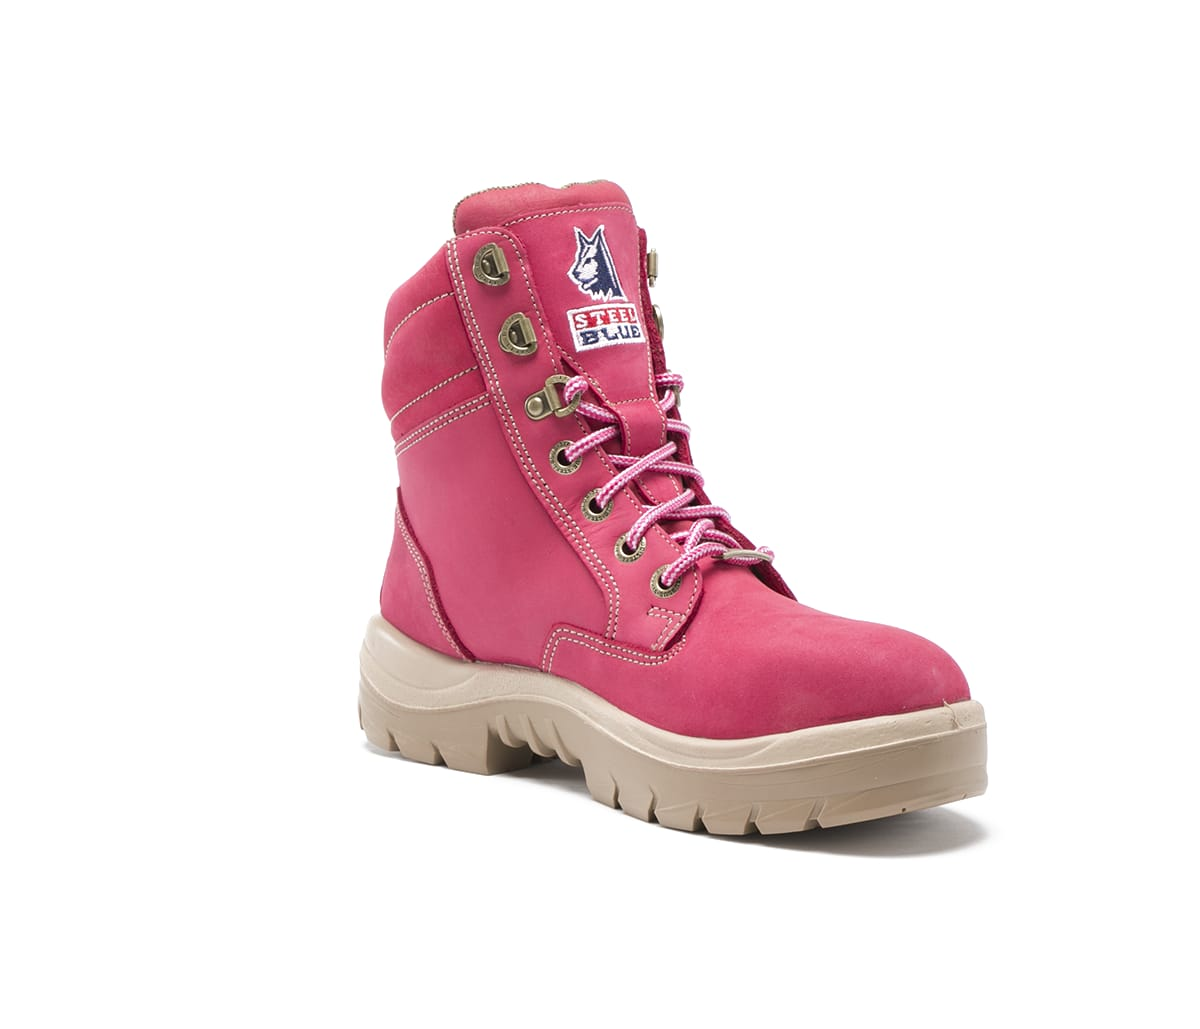 aa6c36ebe962 Southern Cross Ladies Pink Work Boots